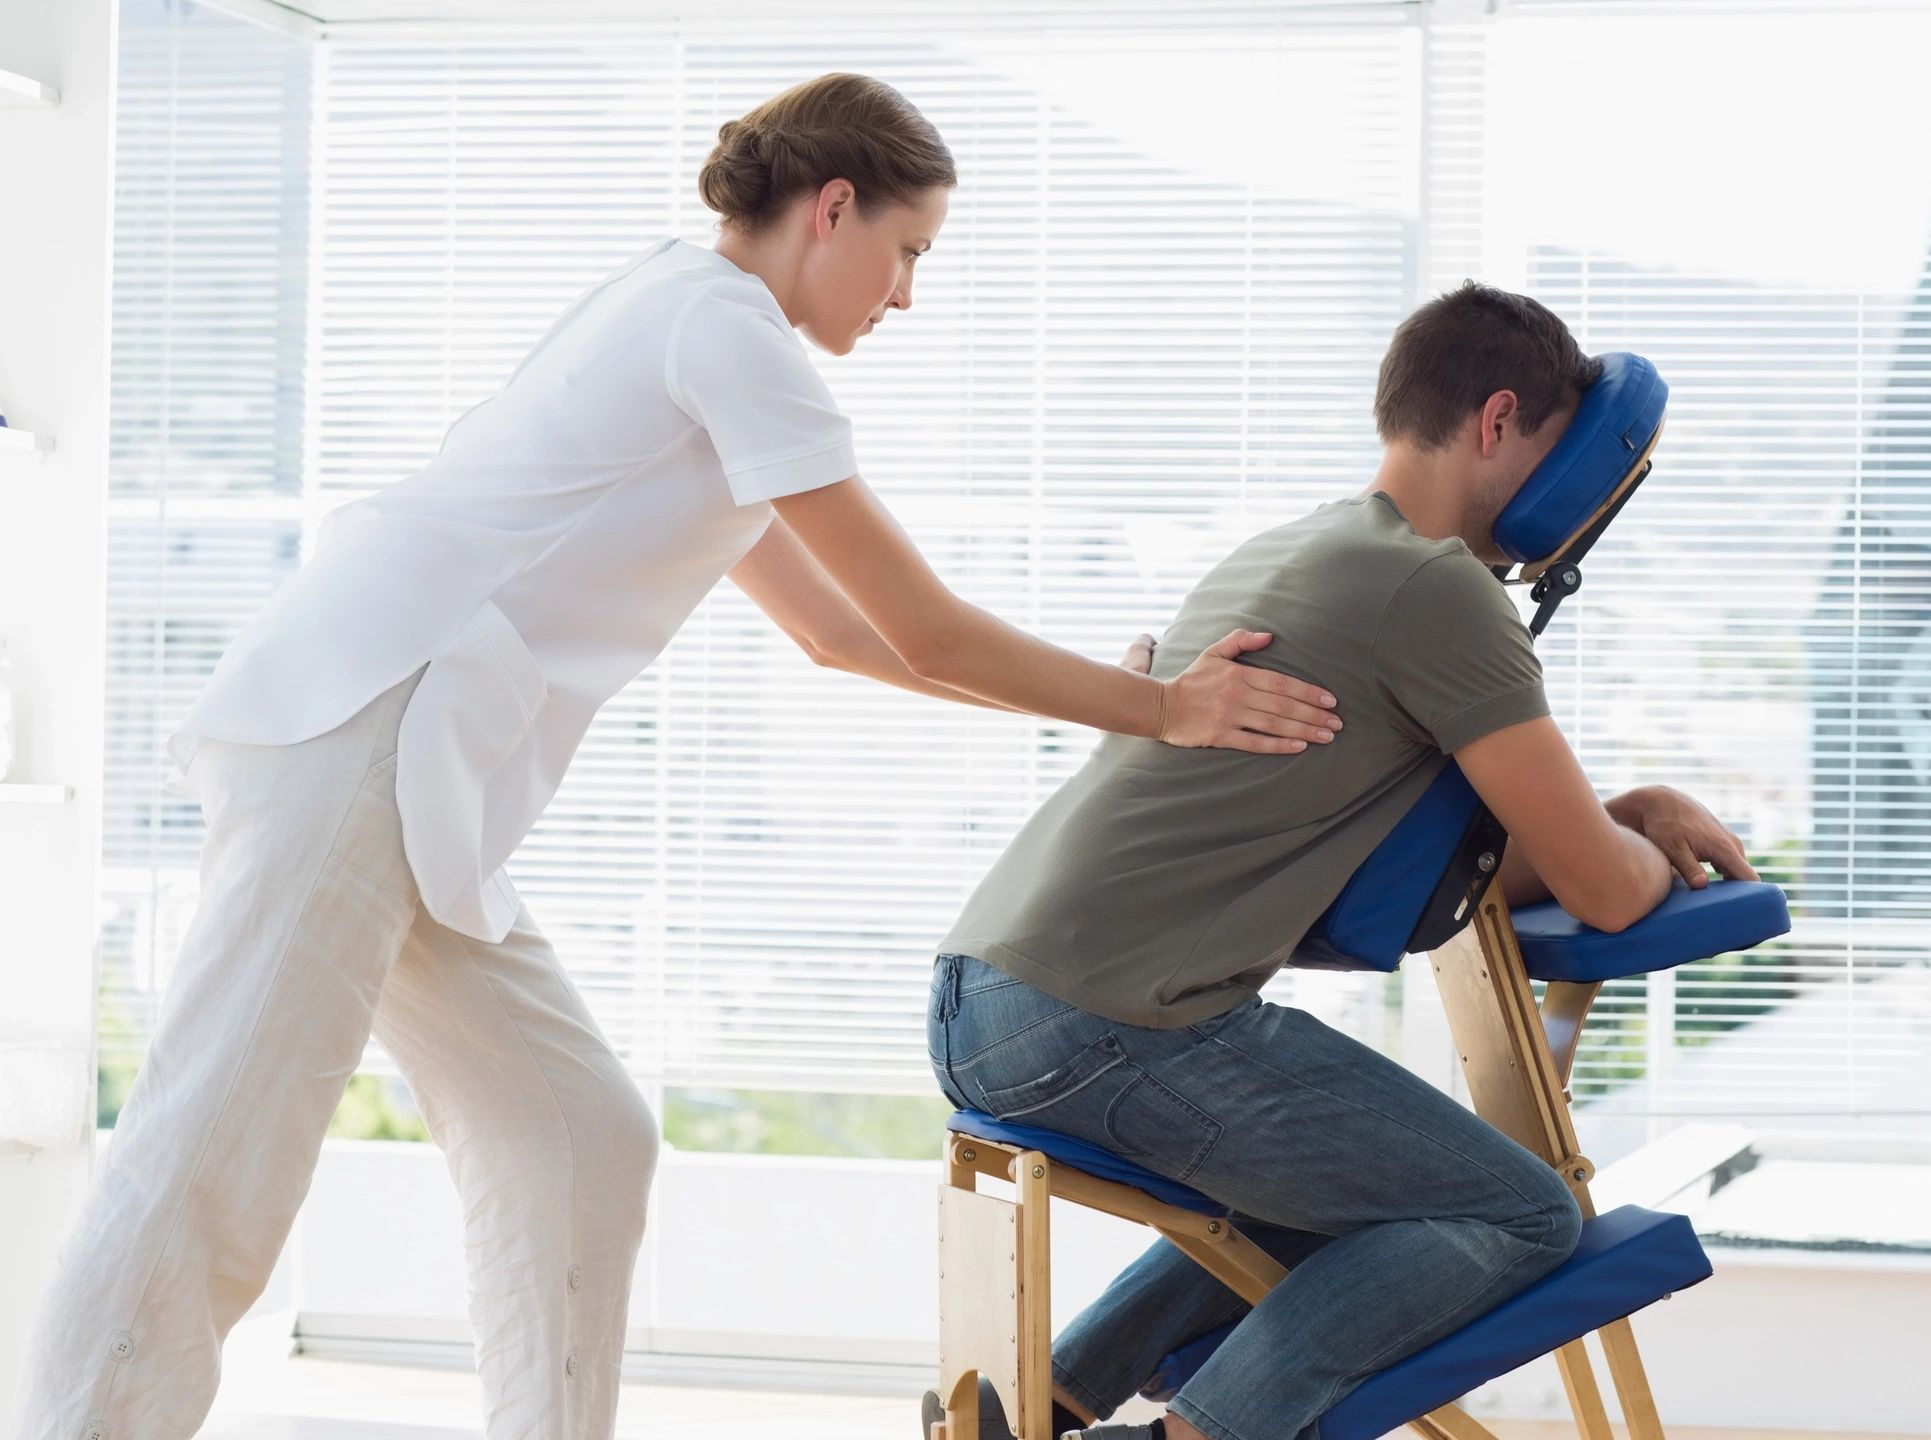 How to Find a Good Chiropractor for Your Family